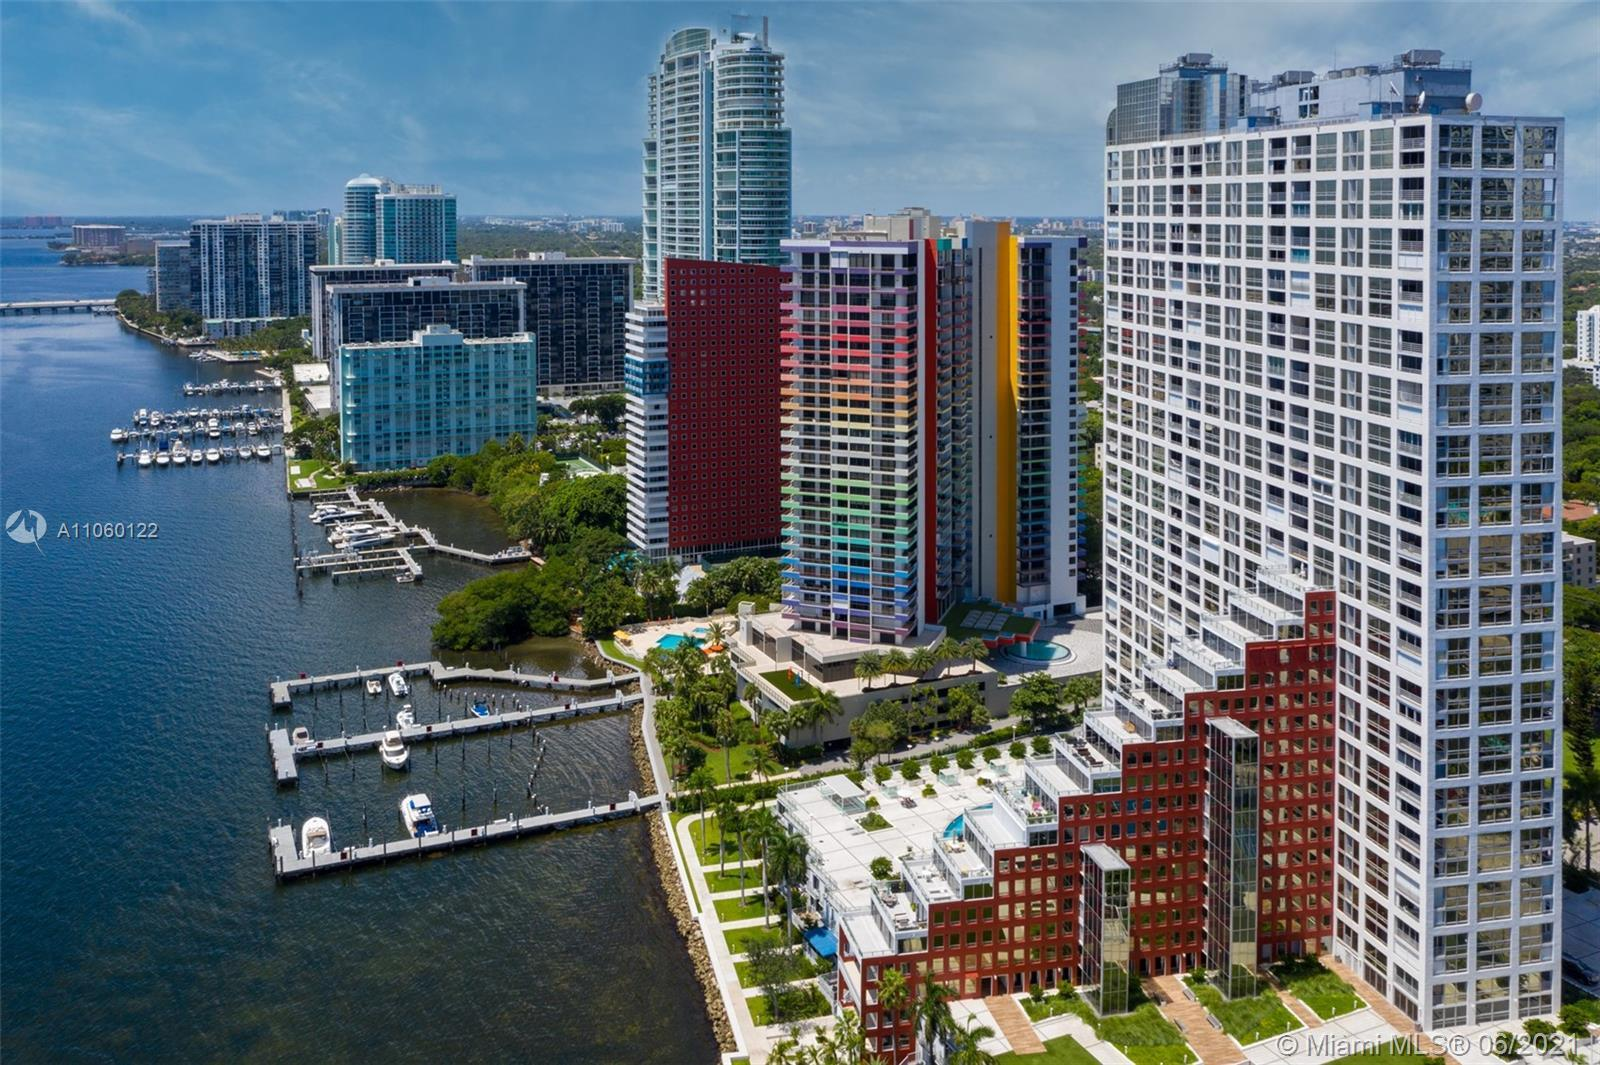 welcome to the fabulous Golden age of Miami. In 1981 Arquitectonica shaped the skyline of Miami, bui